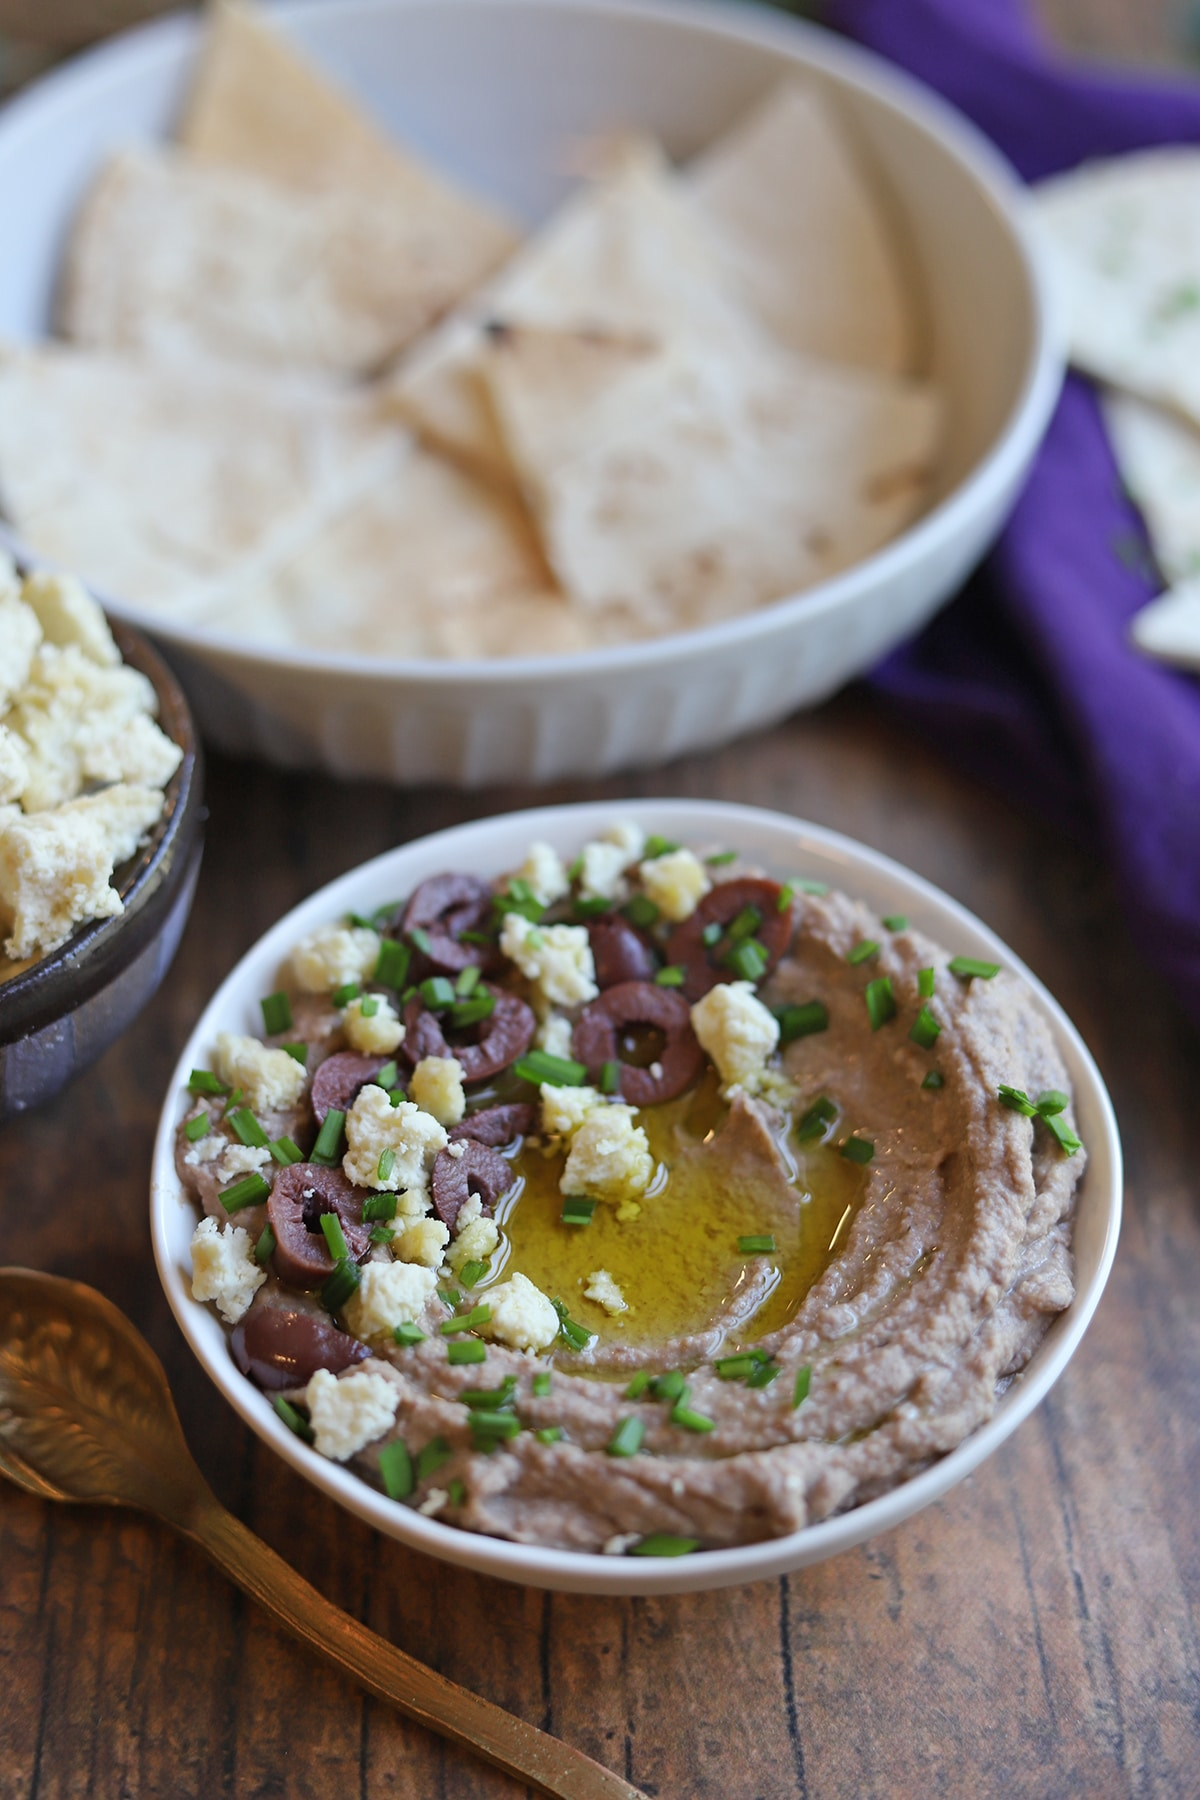 Bowl of chickpea dip with toasted pita.